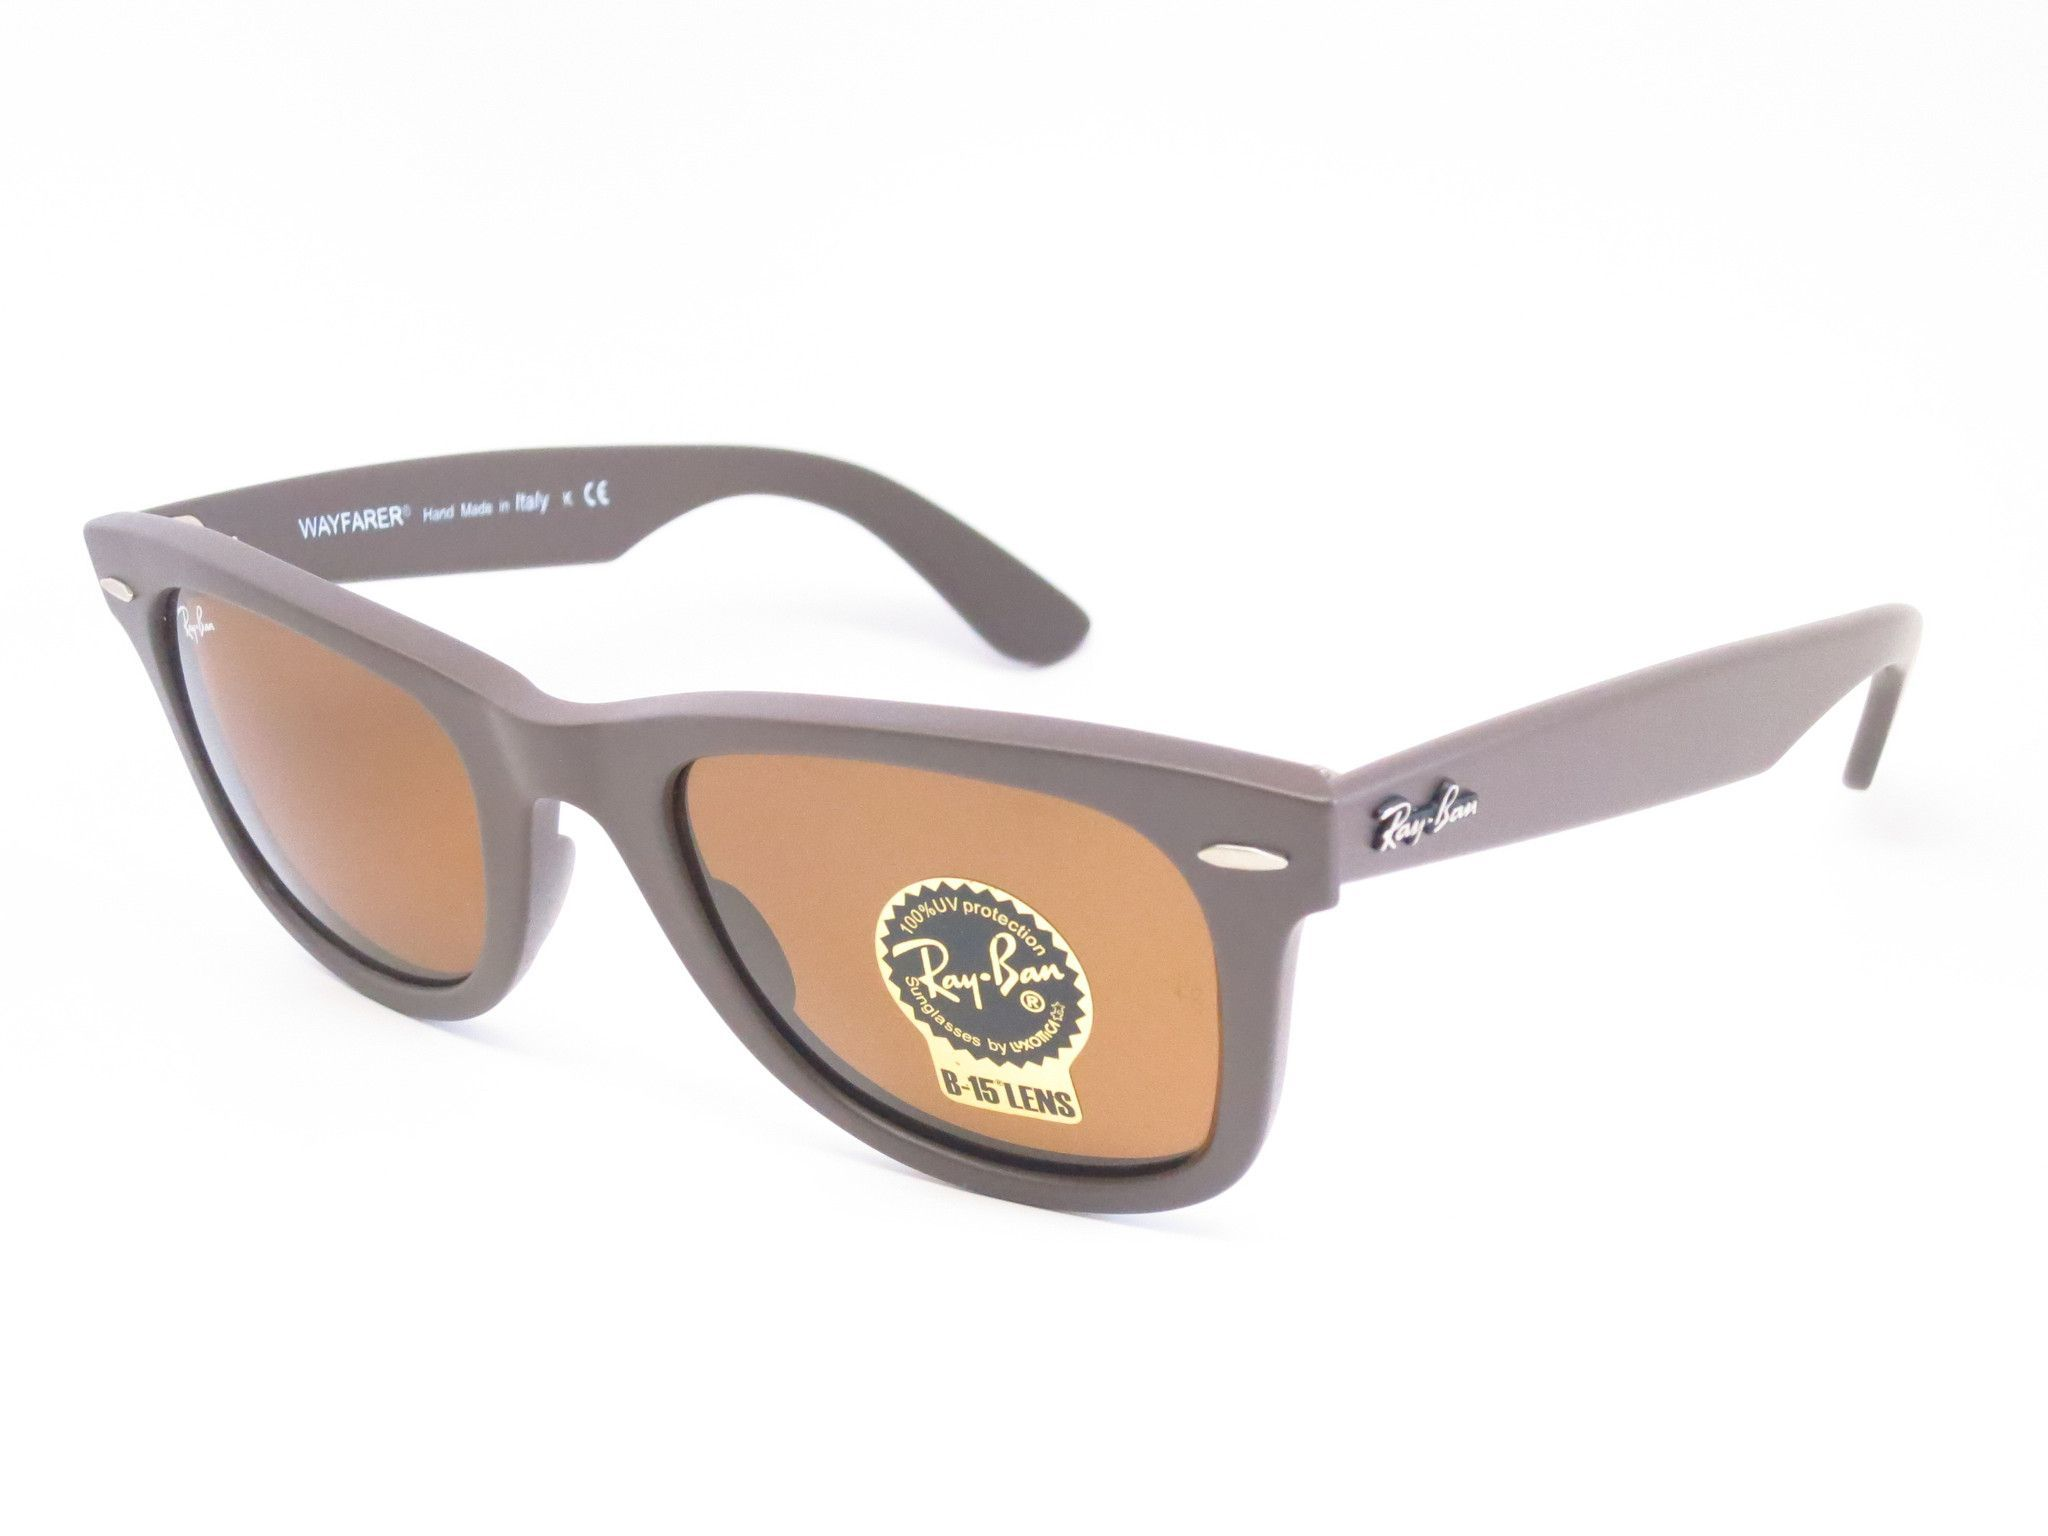 Ray-Ban RB 2140 Original Wayfarer 889 Matte Brown Sunglasses | Pinterest